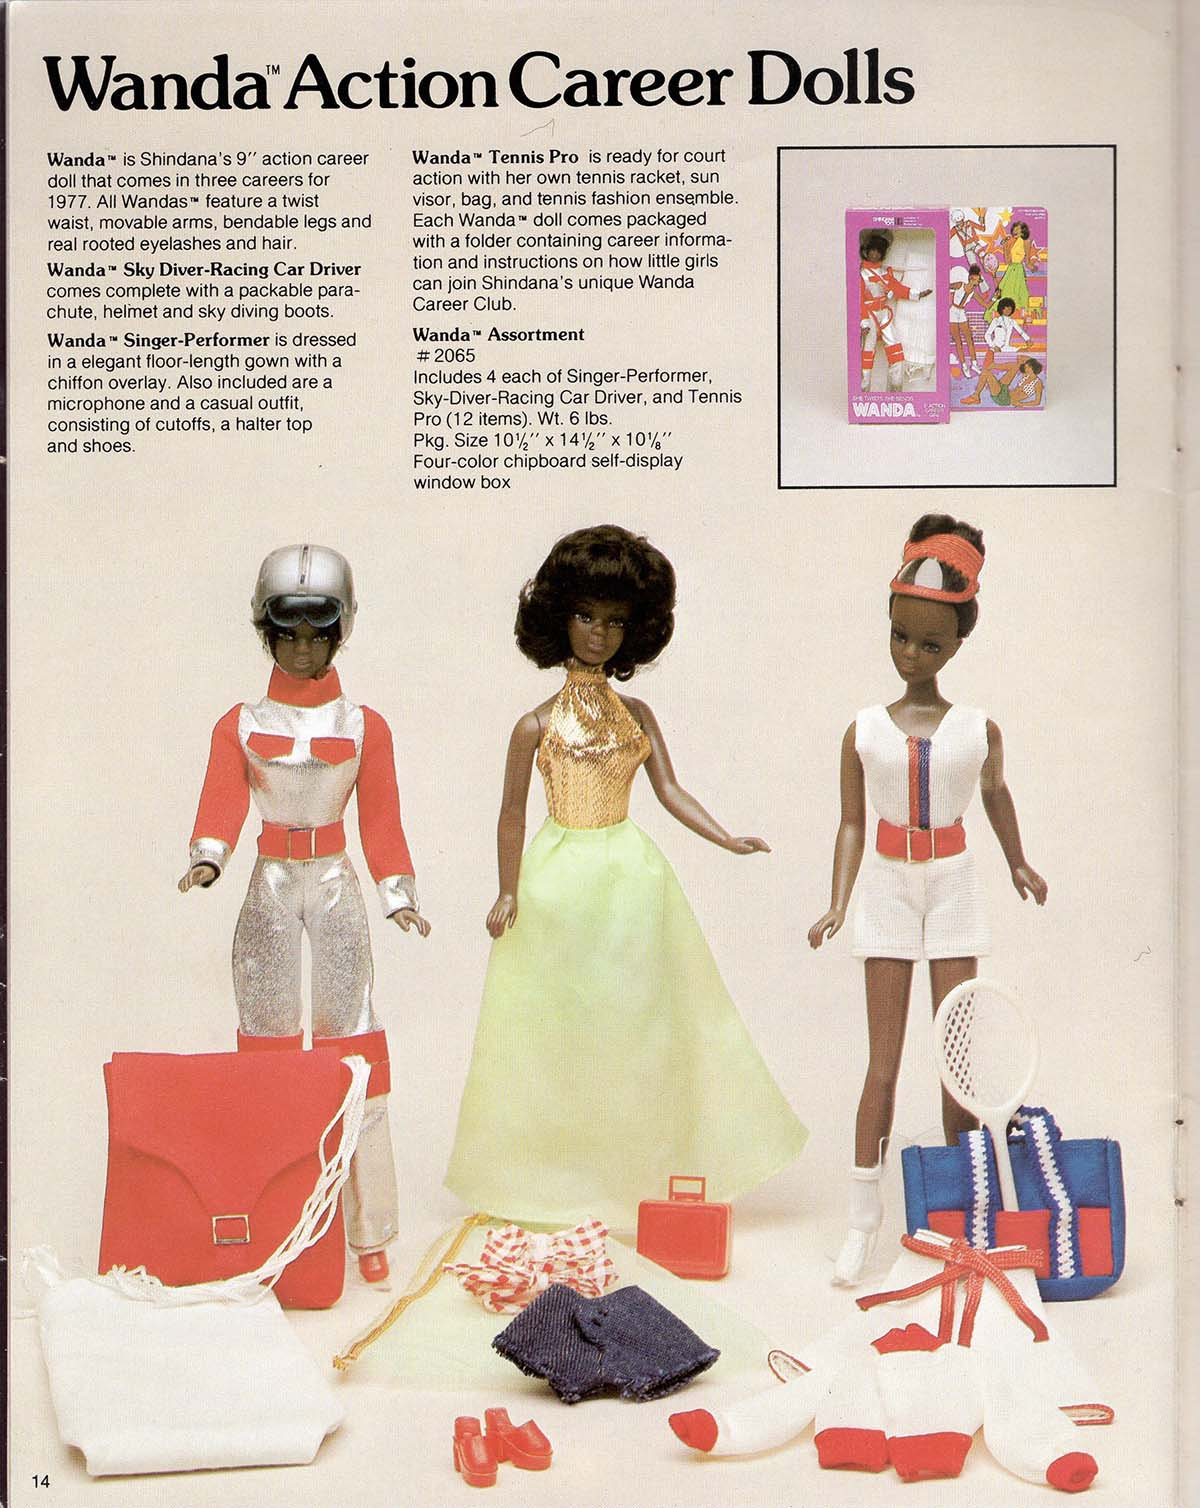 The Wanda Action Career Dolls showcases different career paths for young African American women Slade the Super Agent doll from Shindana Toys  | Courtesy of Billie Green